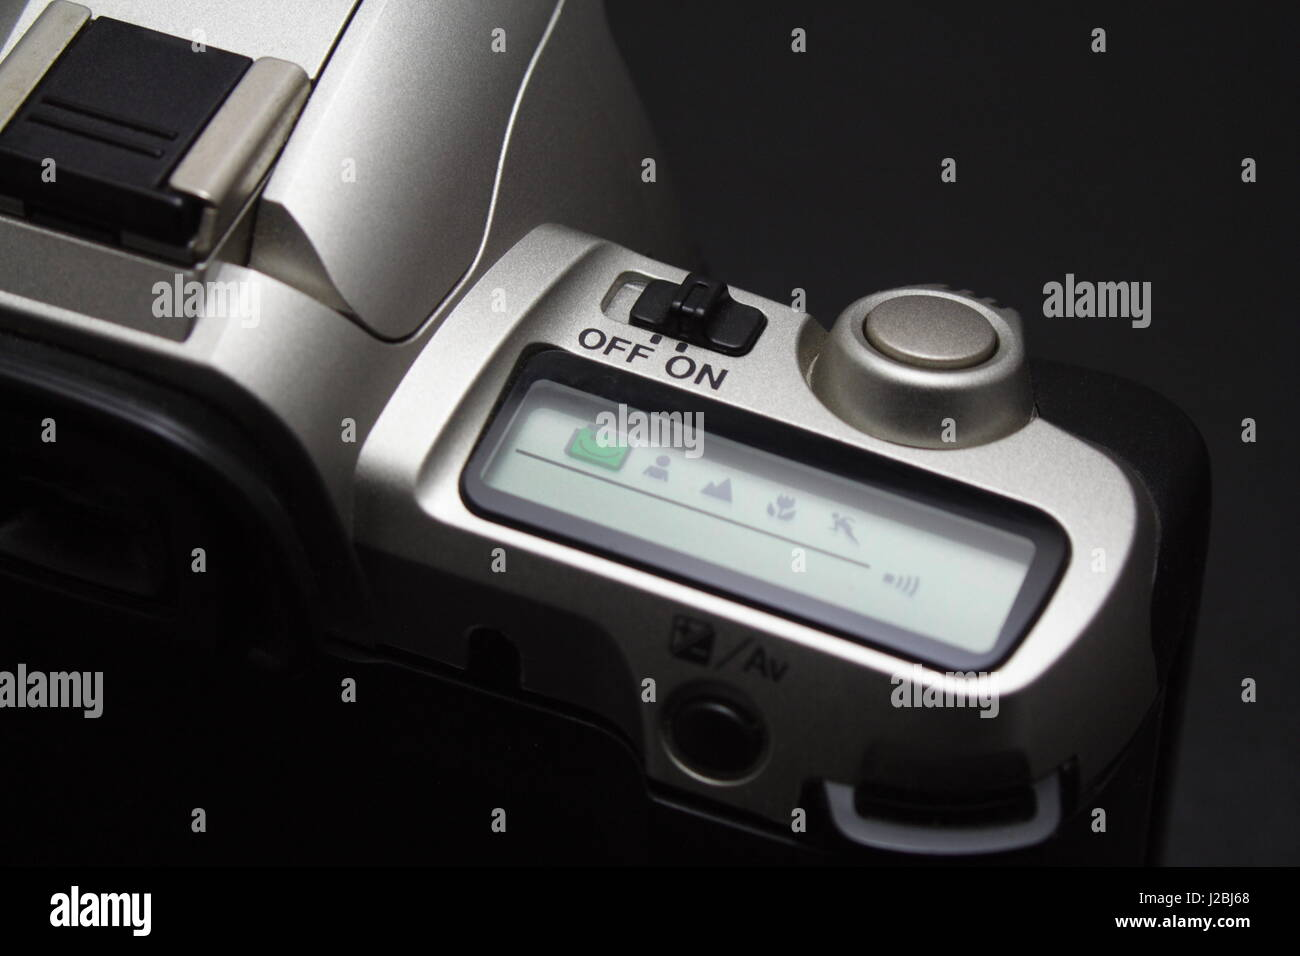 Film Camera Controls and LCD display on - Stock Image